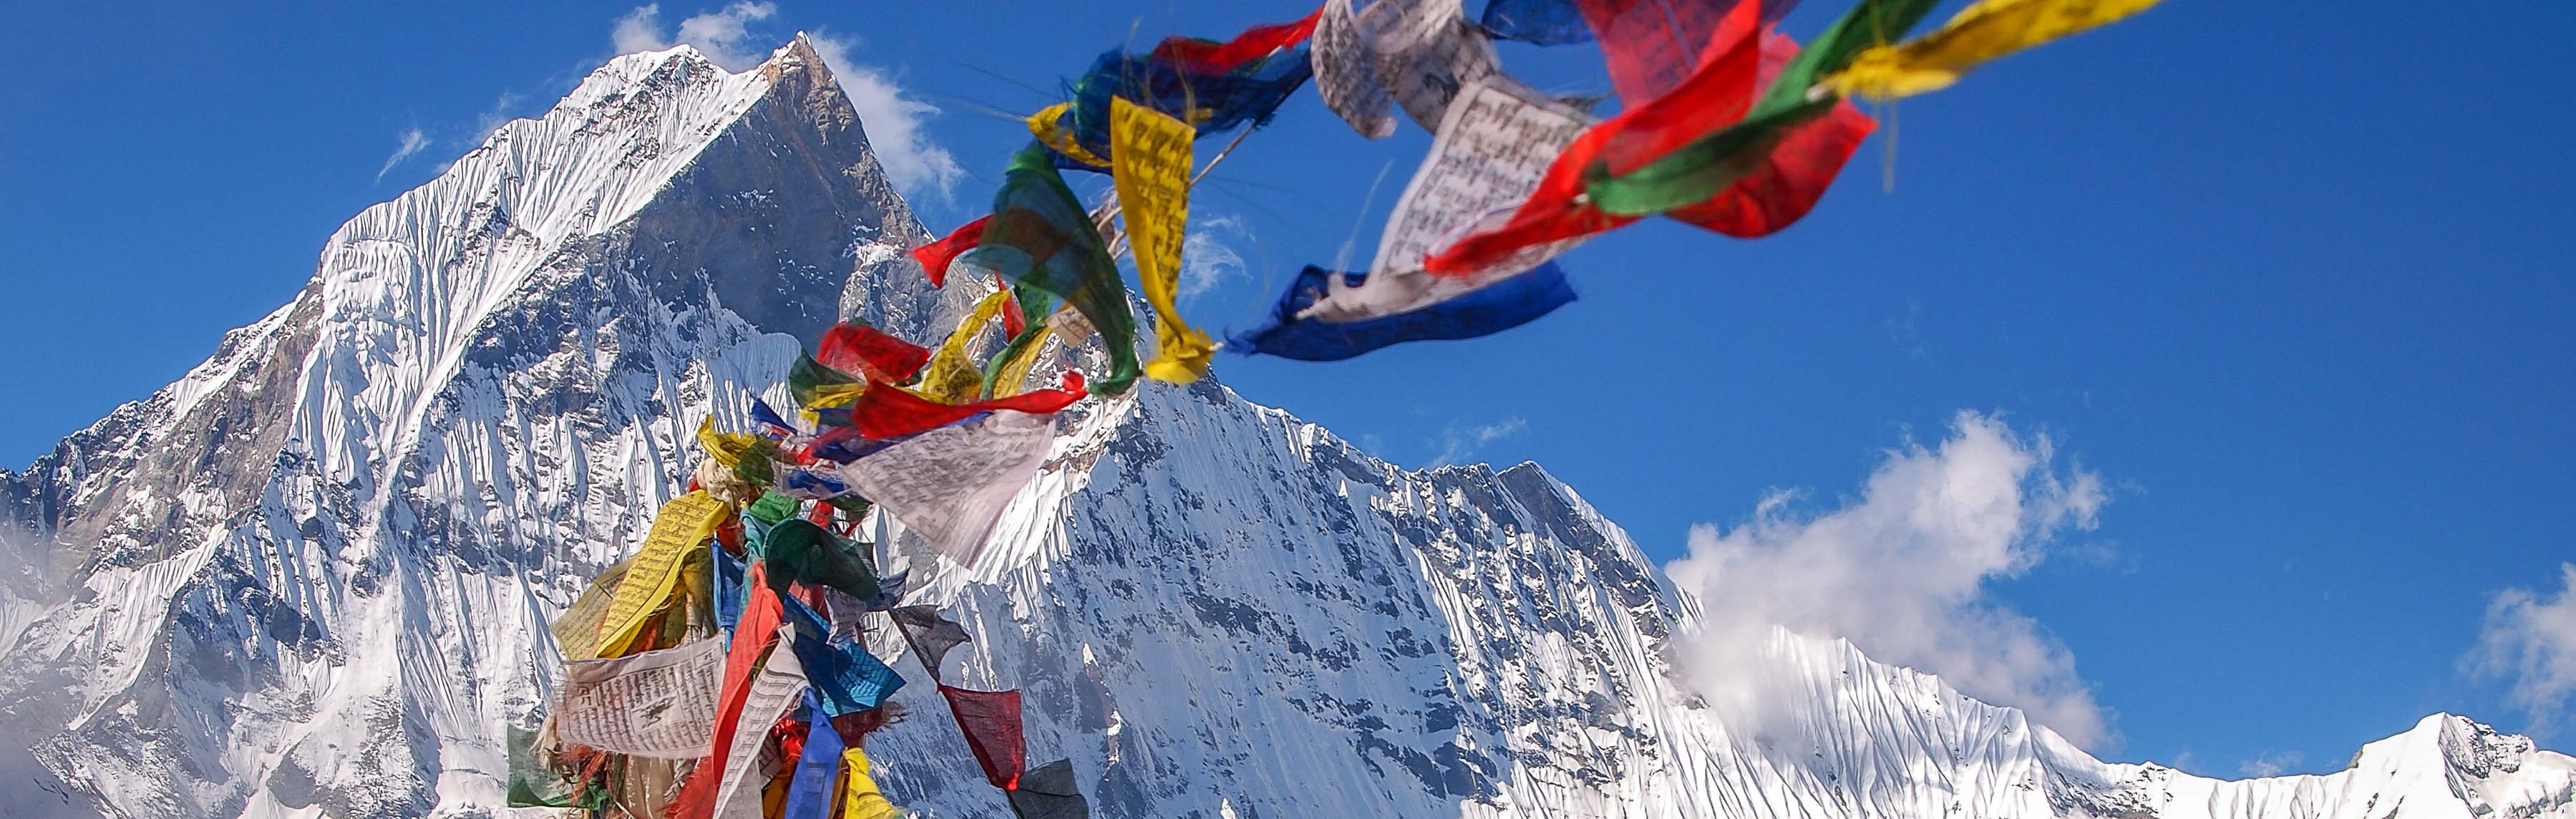 Prayer flags near the summit in the Himalayas of Nepal.